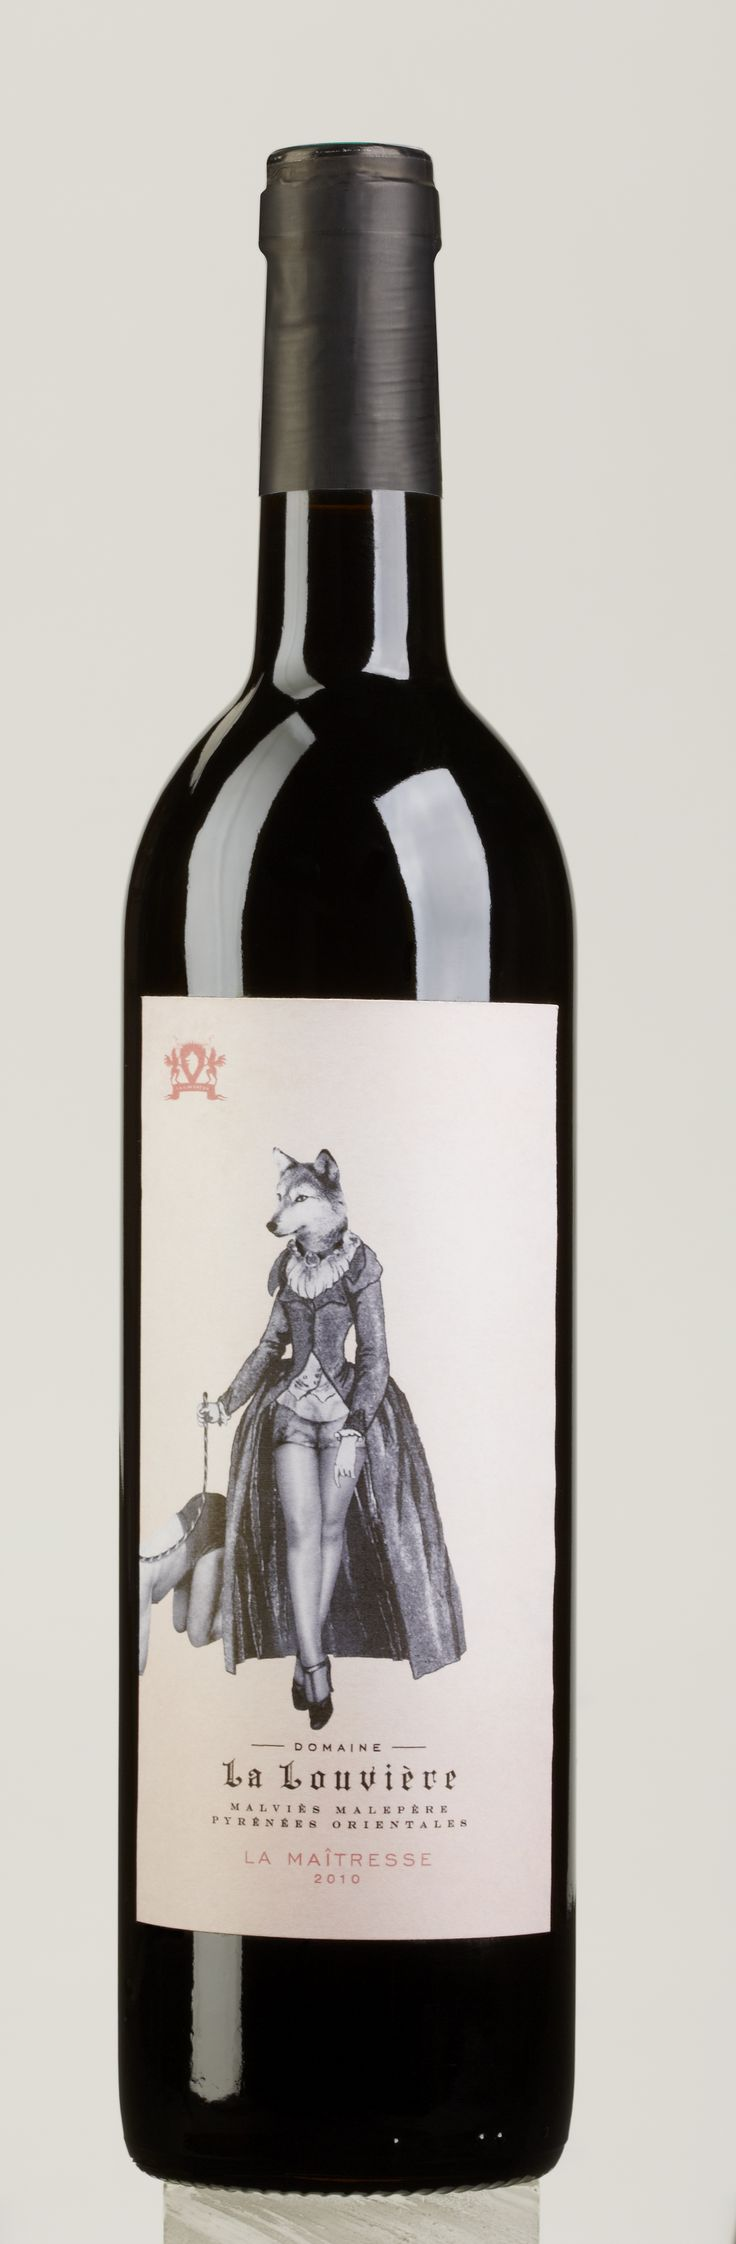 Domaine La Louvière - La Maîtresse - a red wine cuvée with Merlot, Cabernet Franc and Marselan, presented with the most unusual wine label